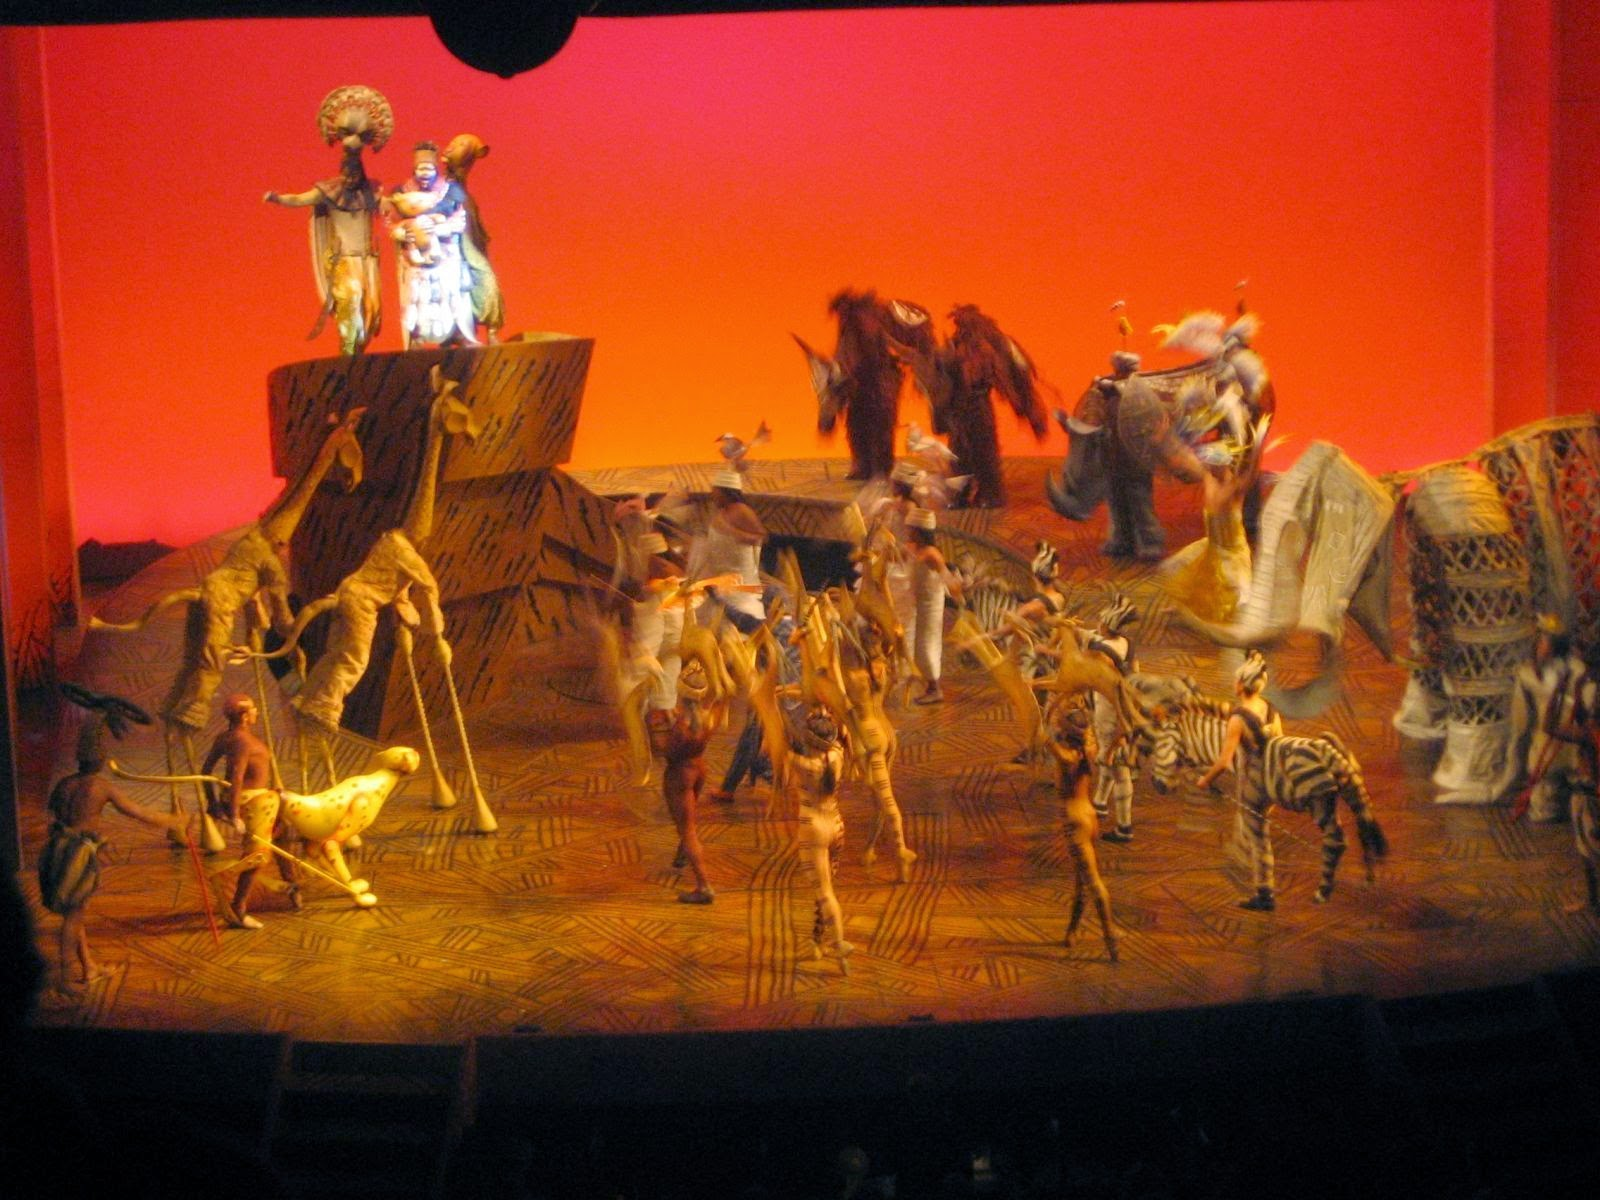 Lyceum Theatre London Magical The Lion King At Lyceum Theatre London